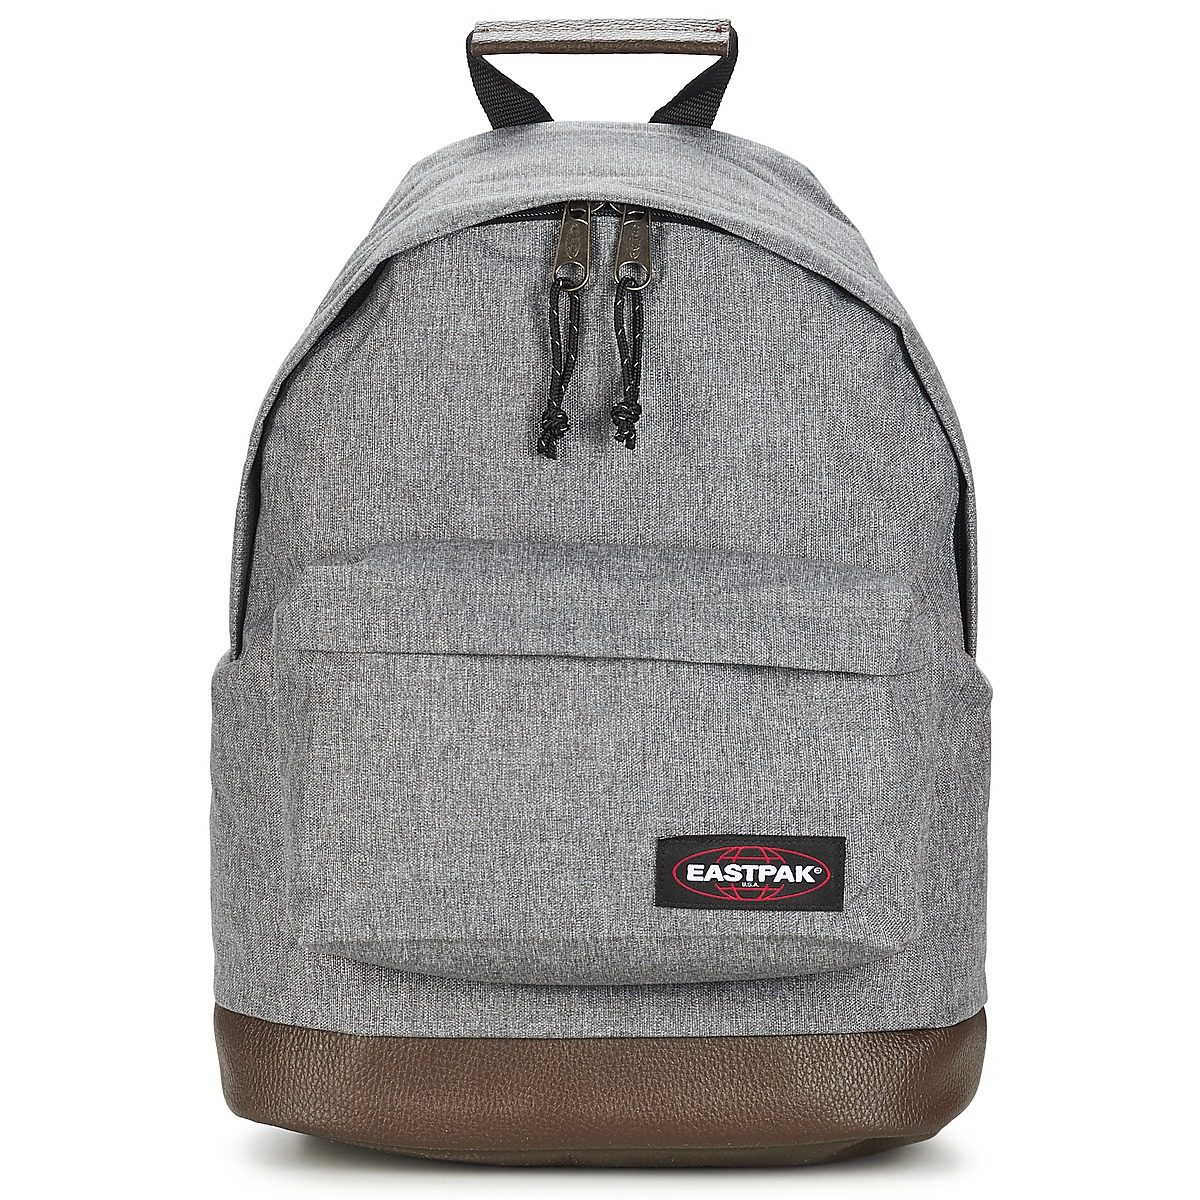 sac dos eastpak wyoming 24l gris livraison gratuite avec sacs 61 99. Black Bedroom Furniture Sets. Home Design Ideas